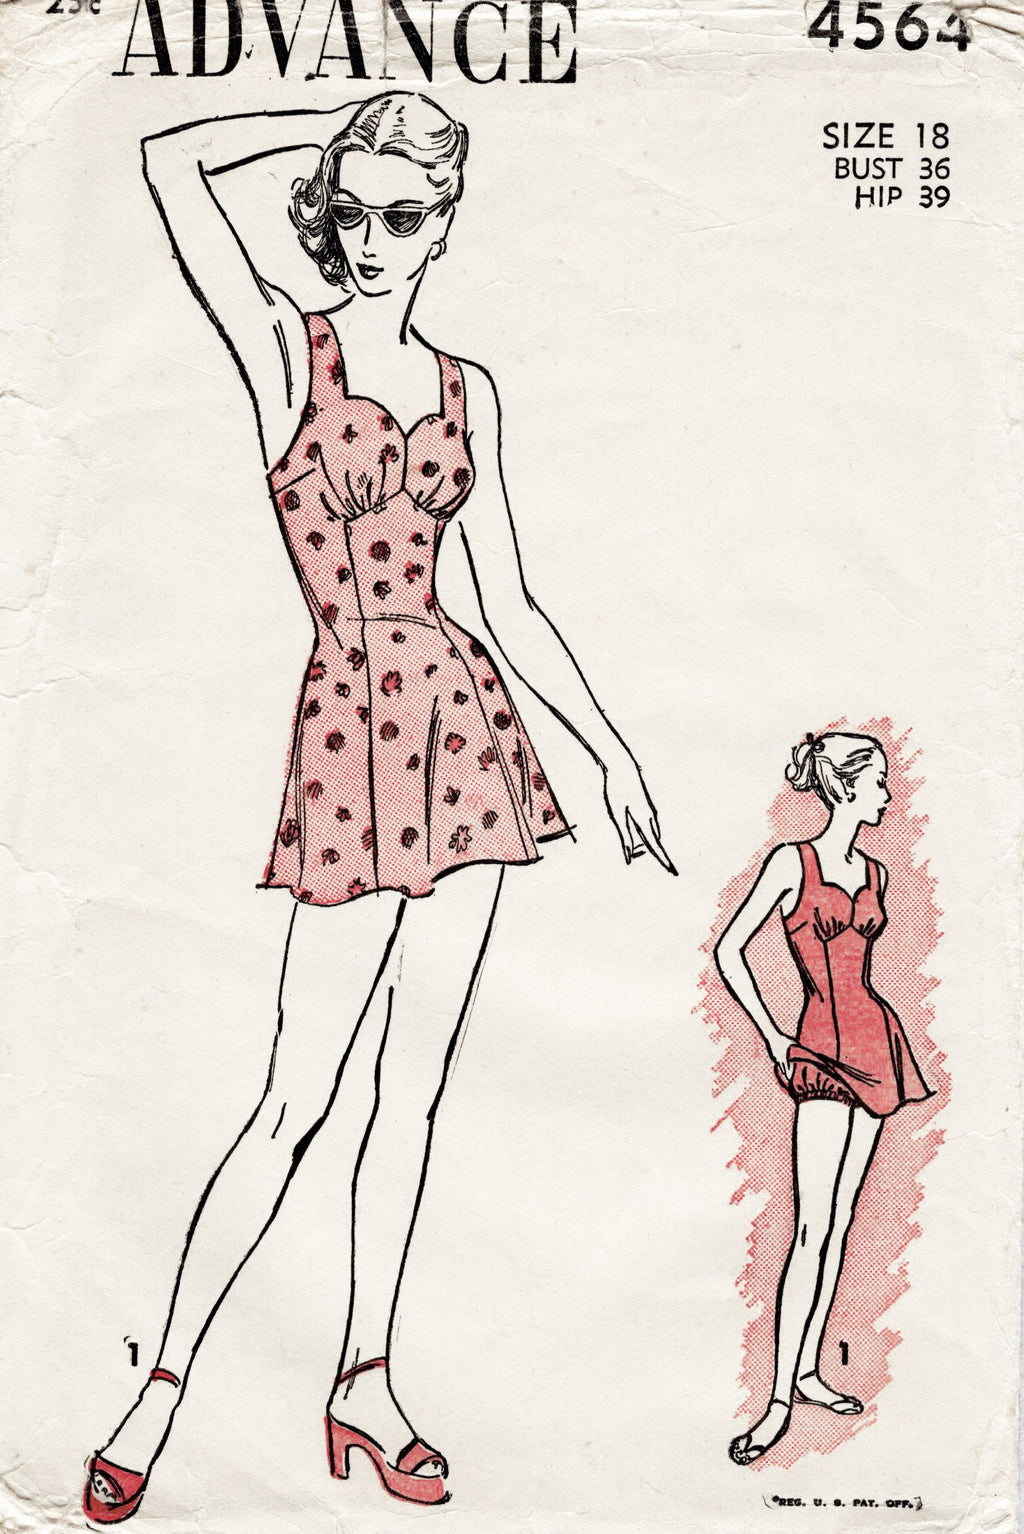 Advance 4564 1940s playsuit vintage sewing pattern